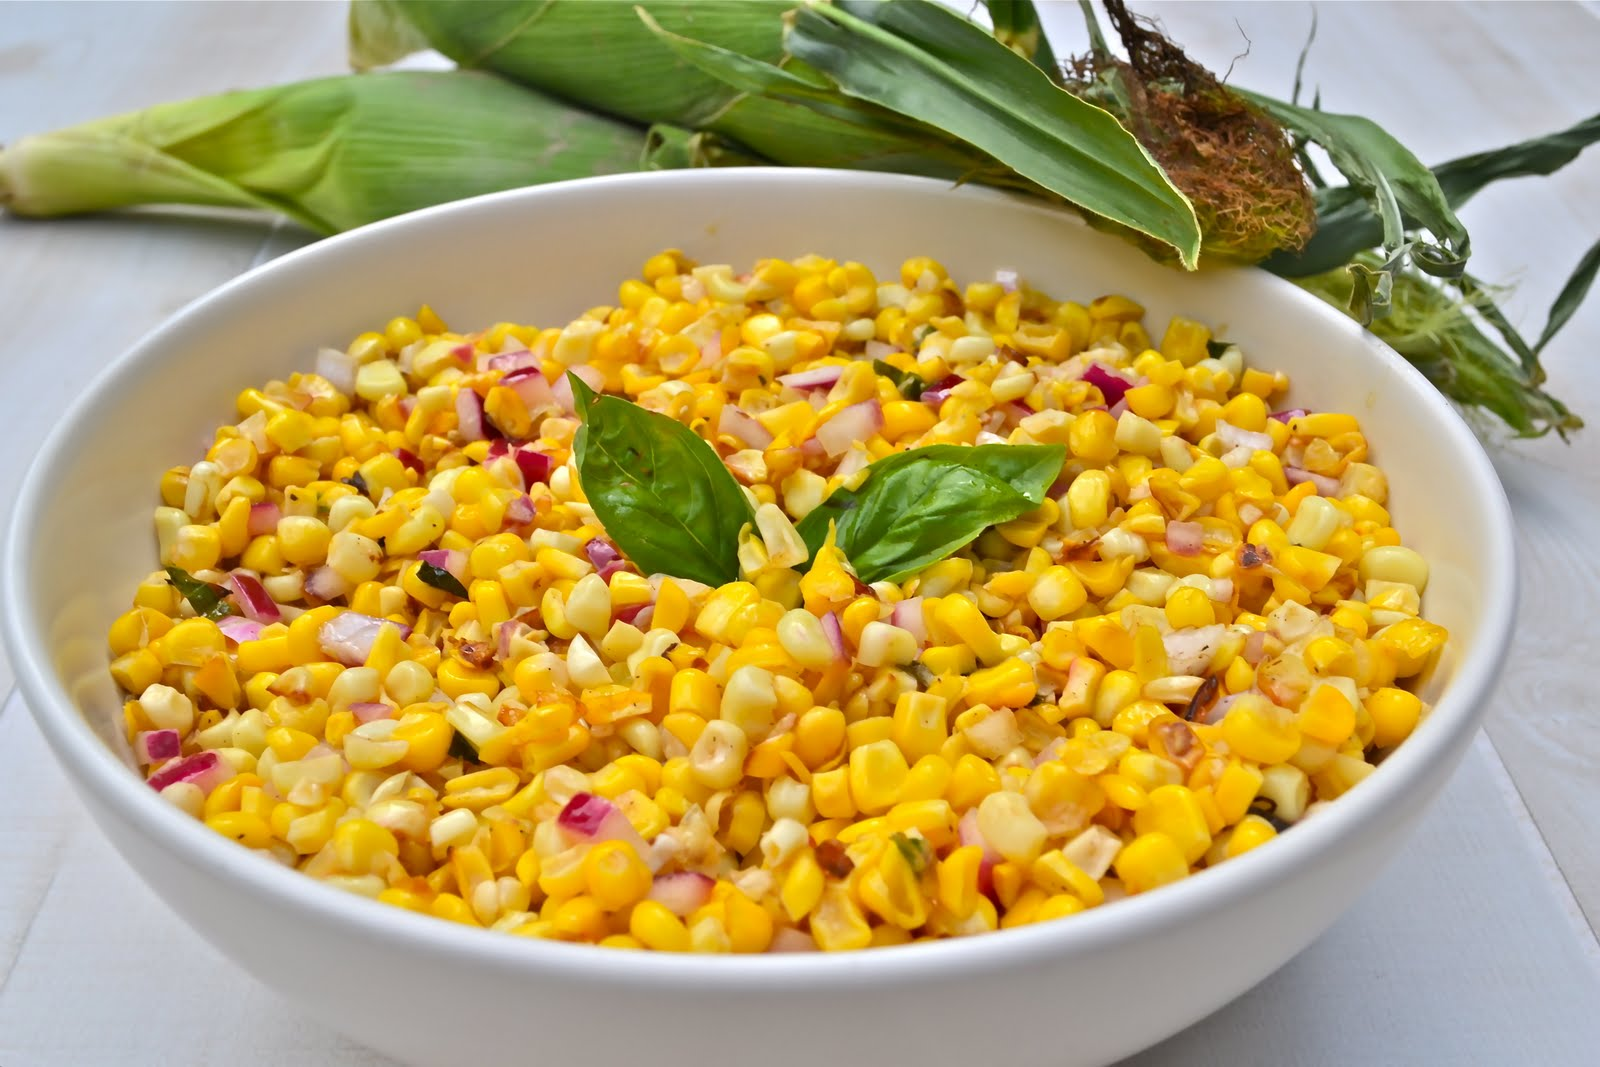 ... when i was pregnant with the twins i craved sweet fresh corn on the